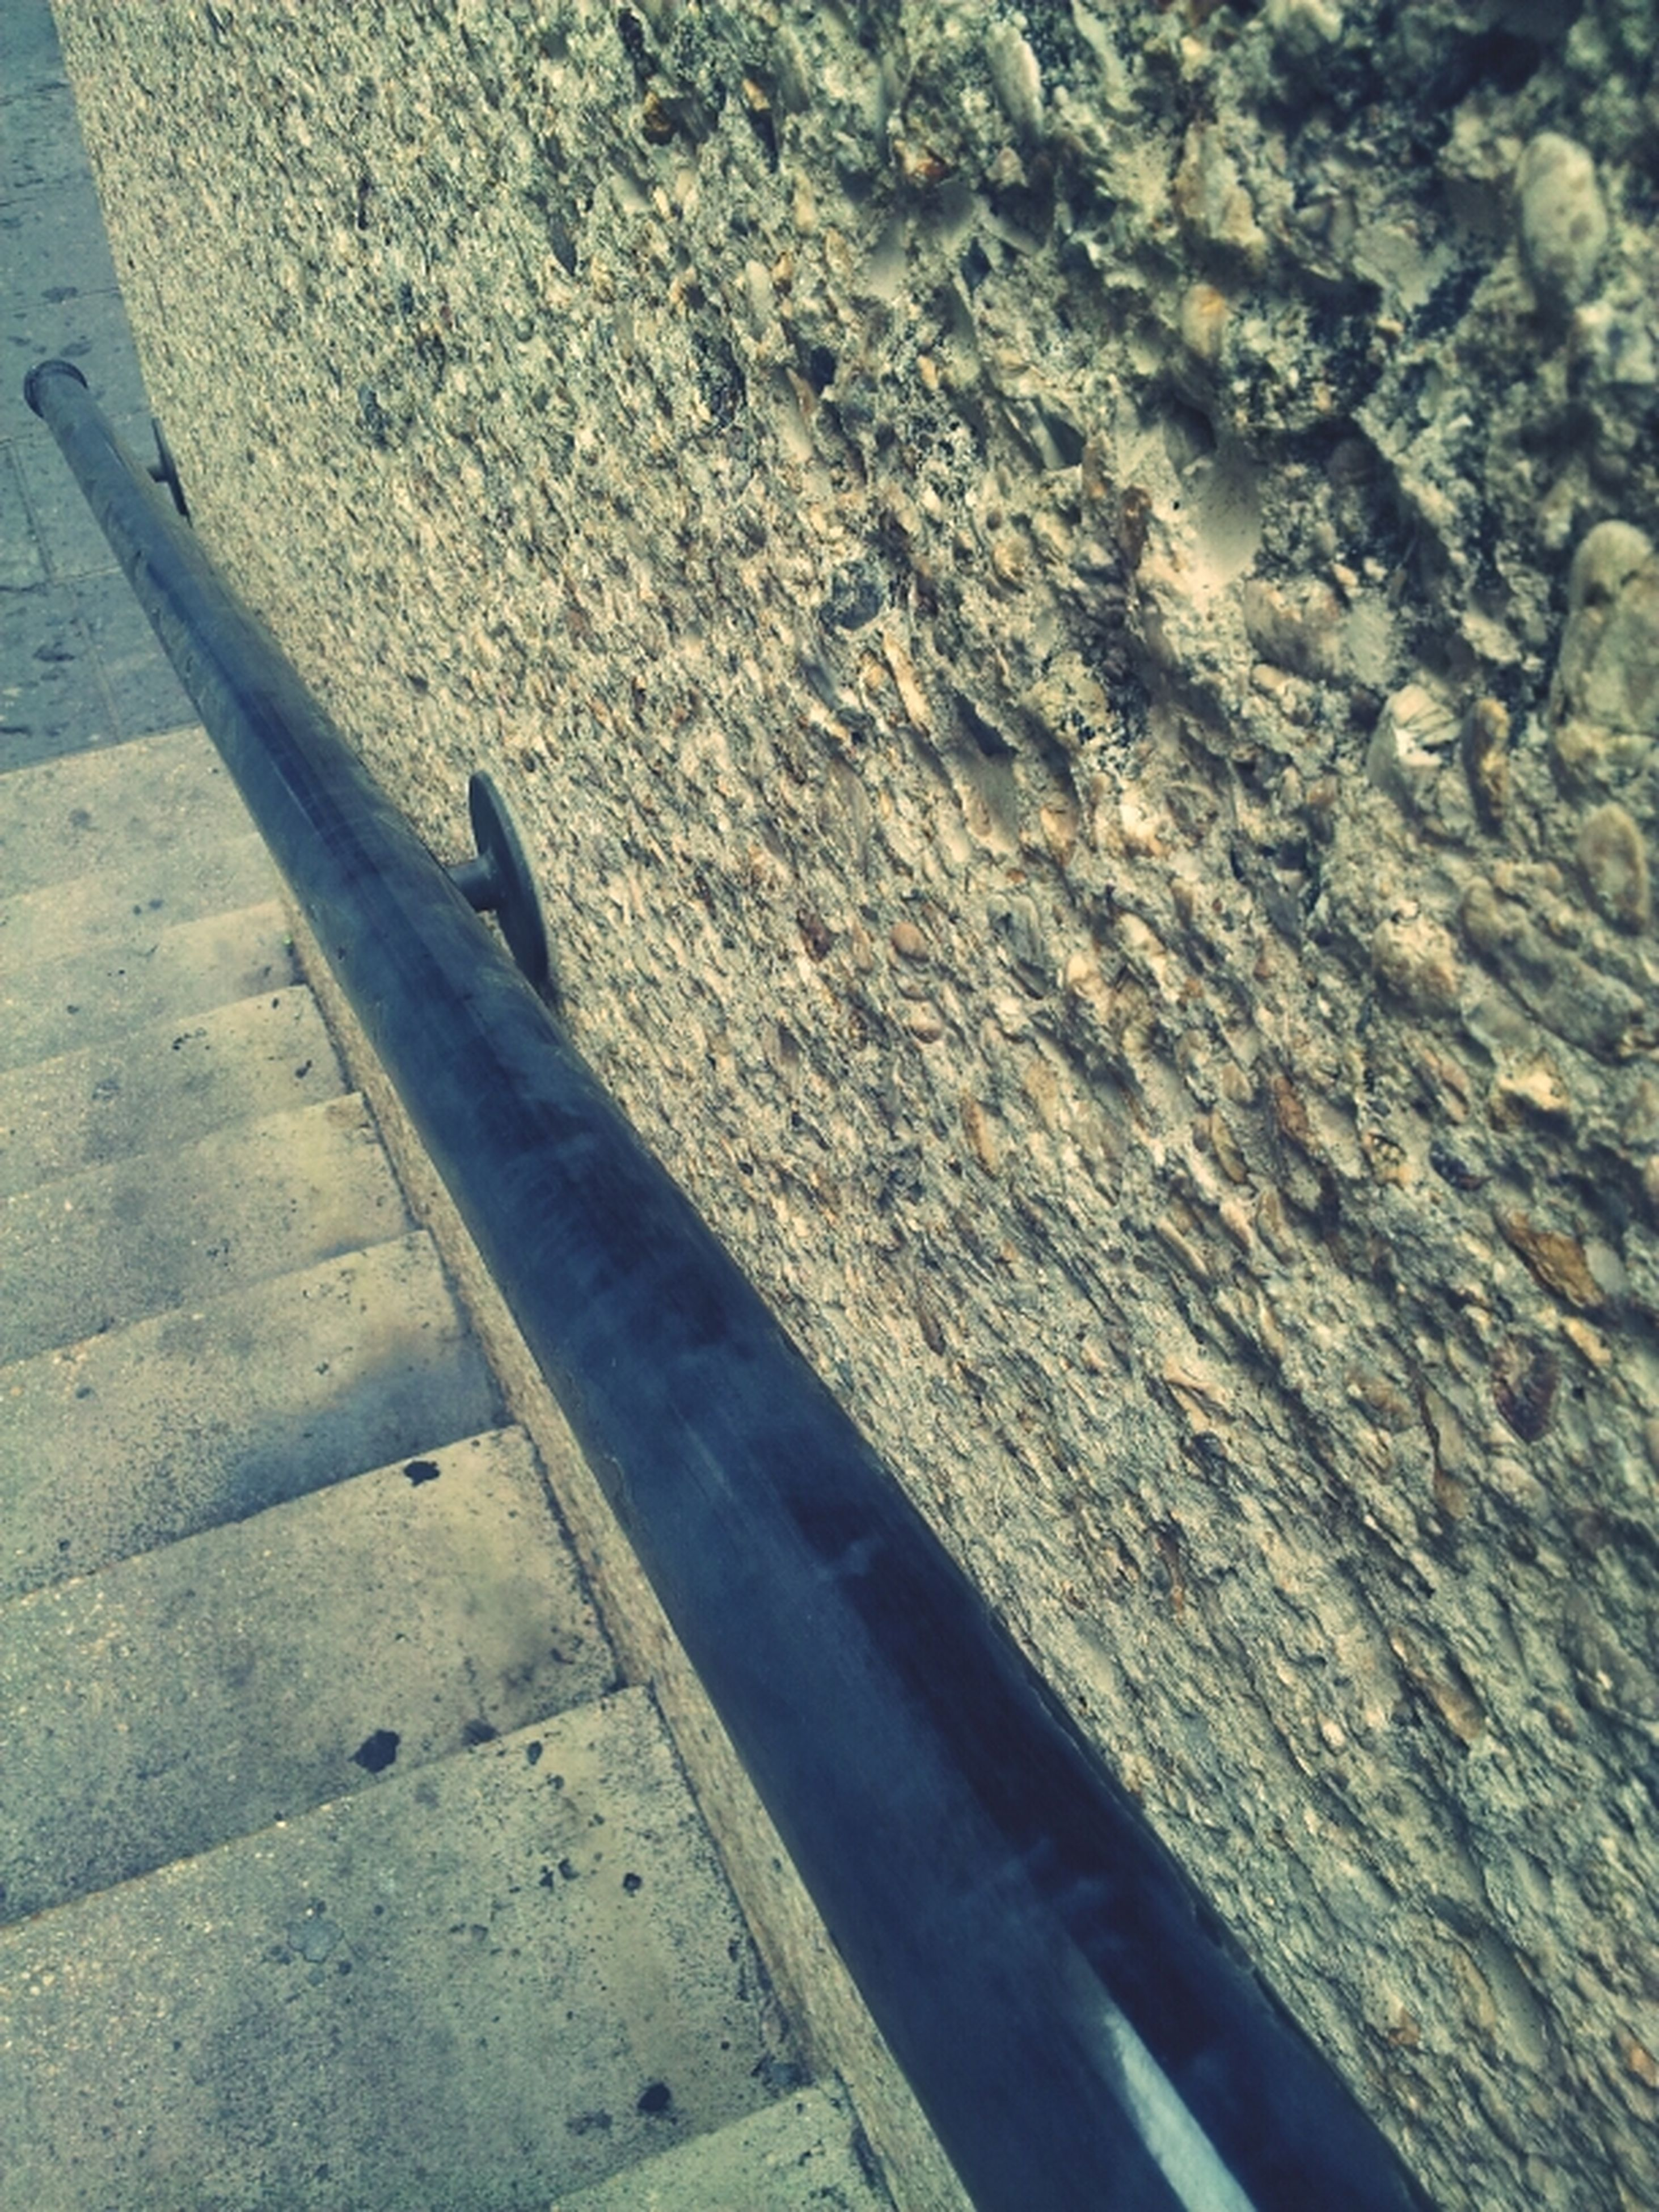 high angle view, shadow, sunlight, day, street, road, outdoors, textured, close-up, no people, asphalt, concrete, transportation, part of, sidewalk, elevated view, railing, cropped, nature, footpath